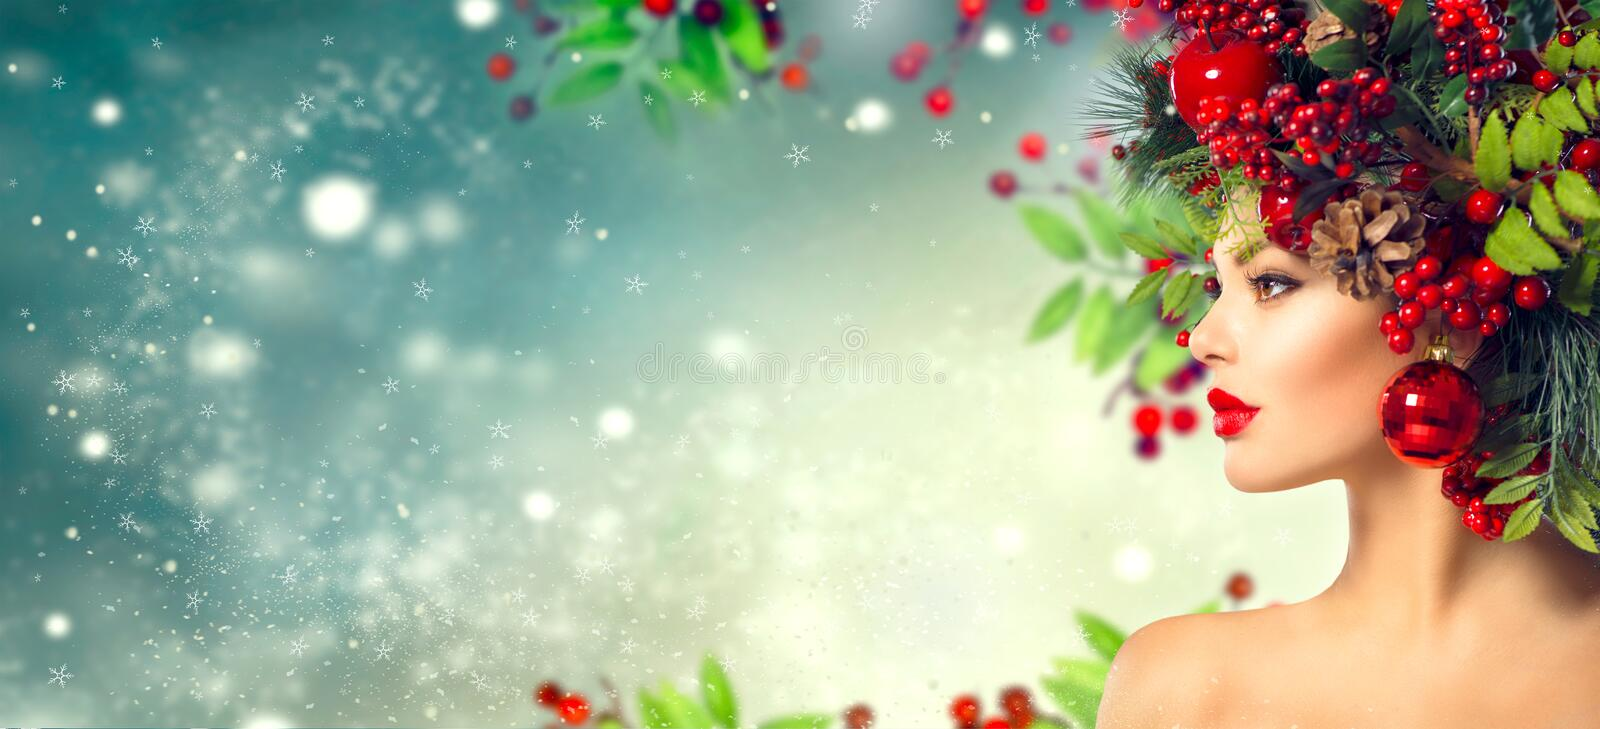 Download Christmas Hairstyle. Holiday Makeup Stock Image - Image of lady, decorations: 80451433